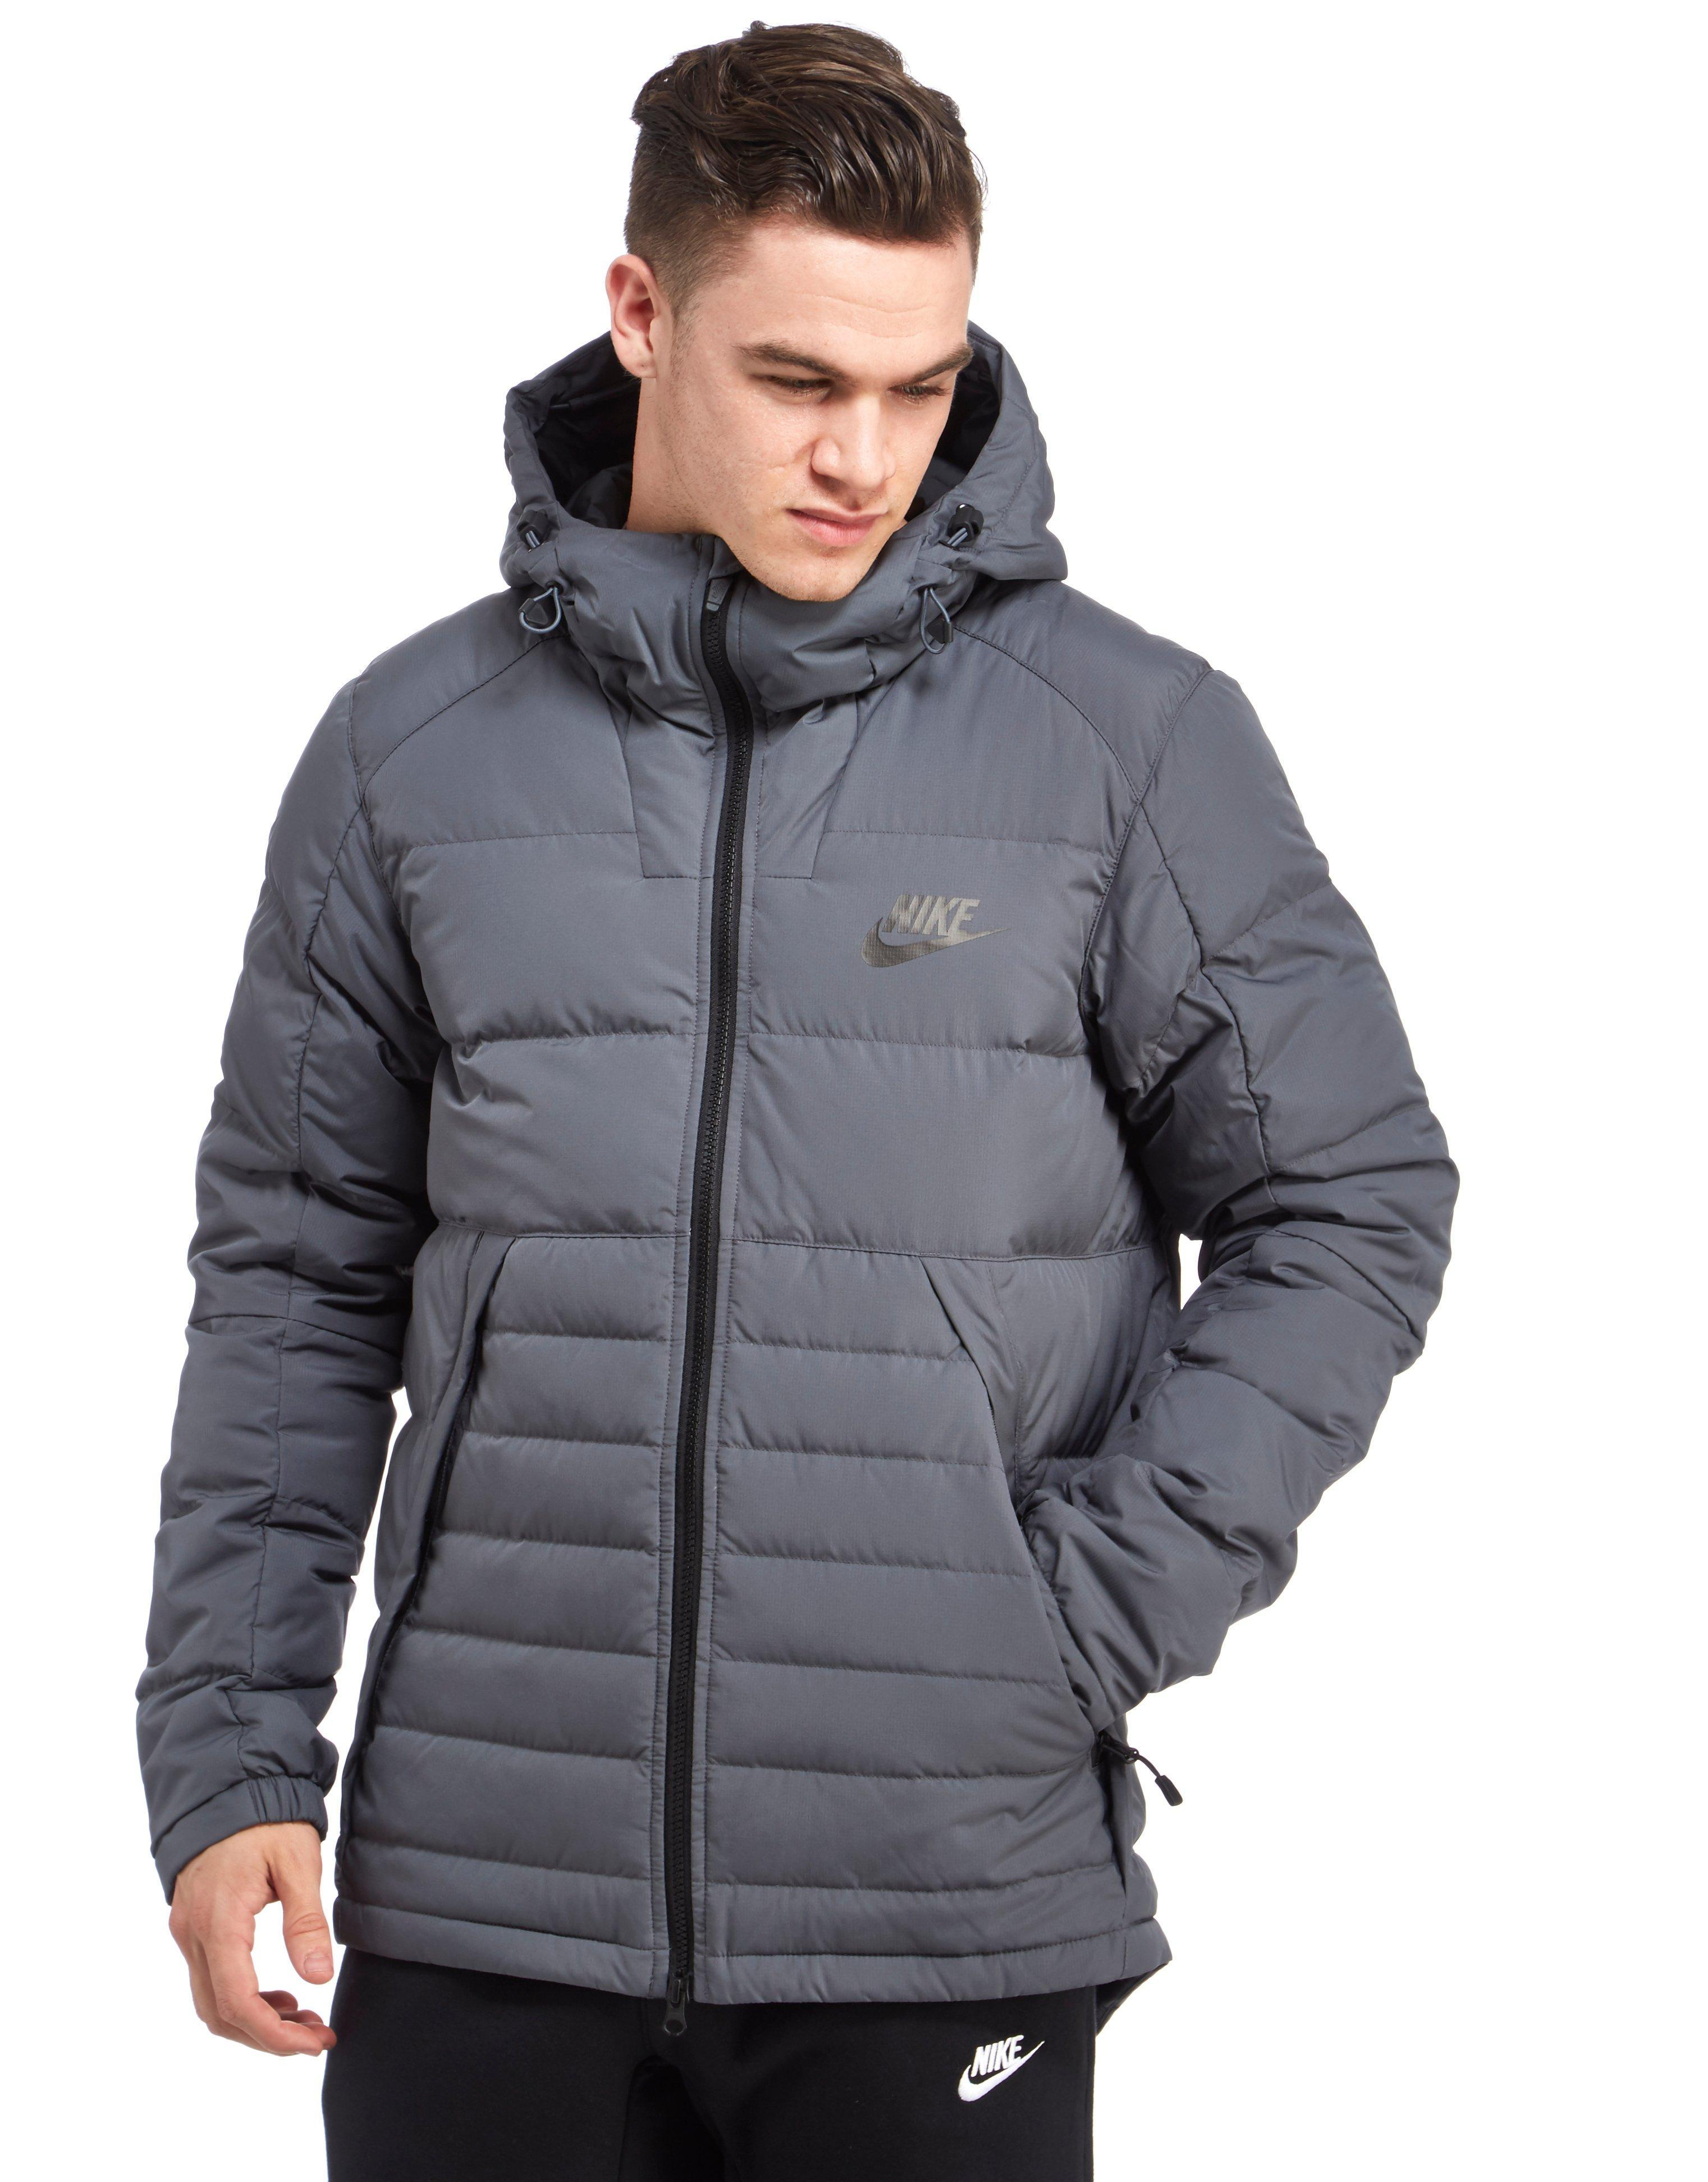 Nike Padded Down Jacket In Gray For Men Lyst